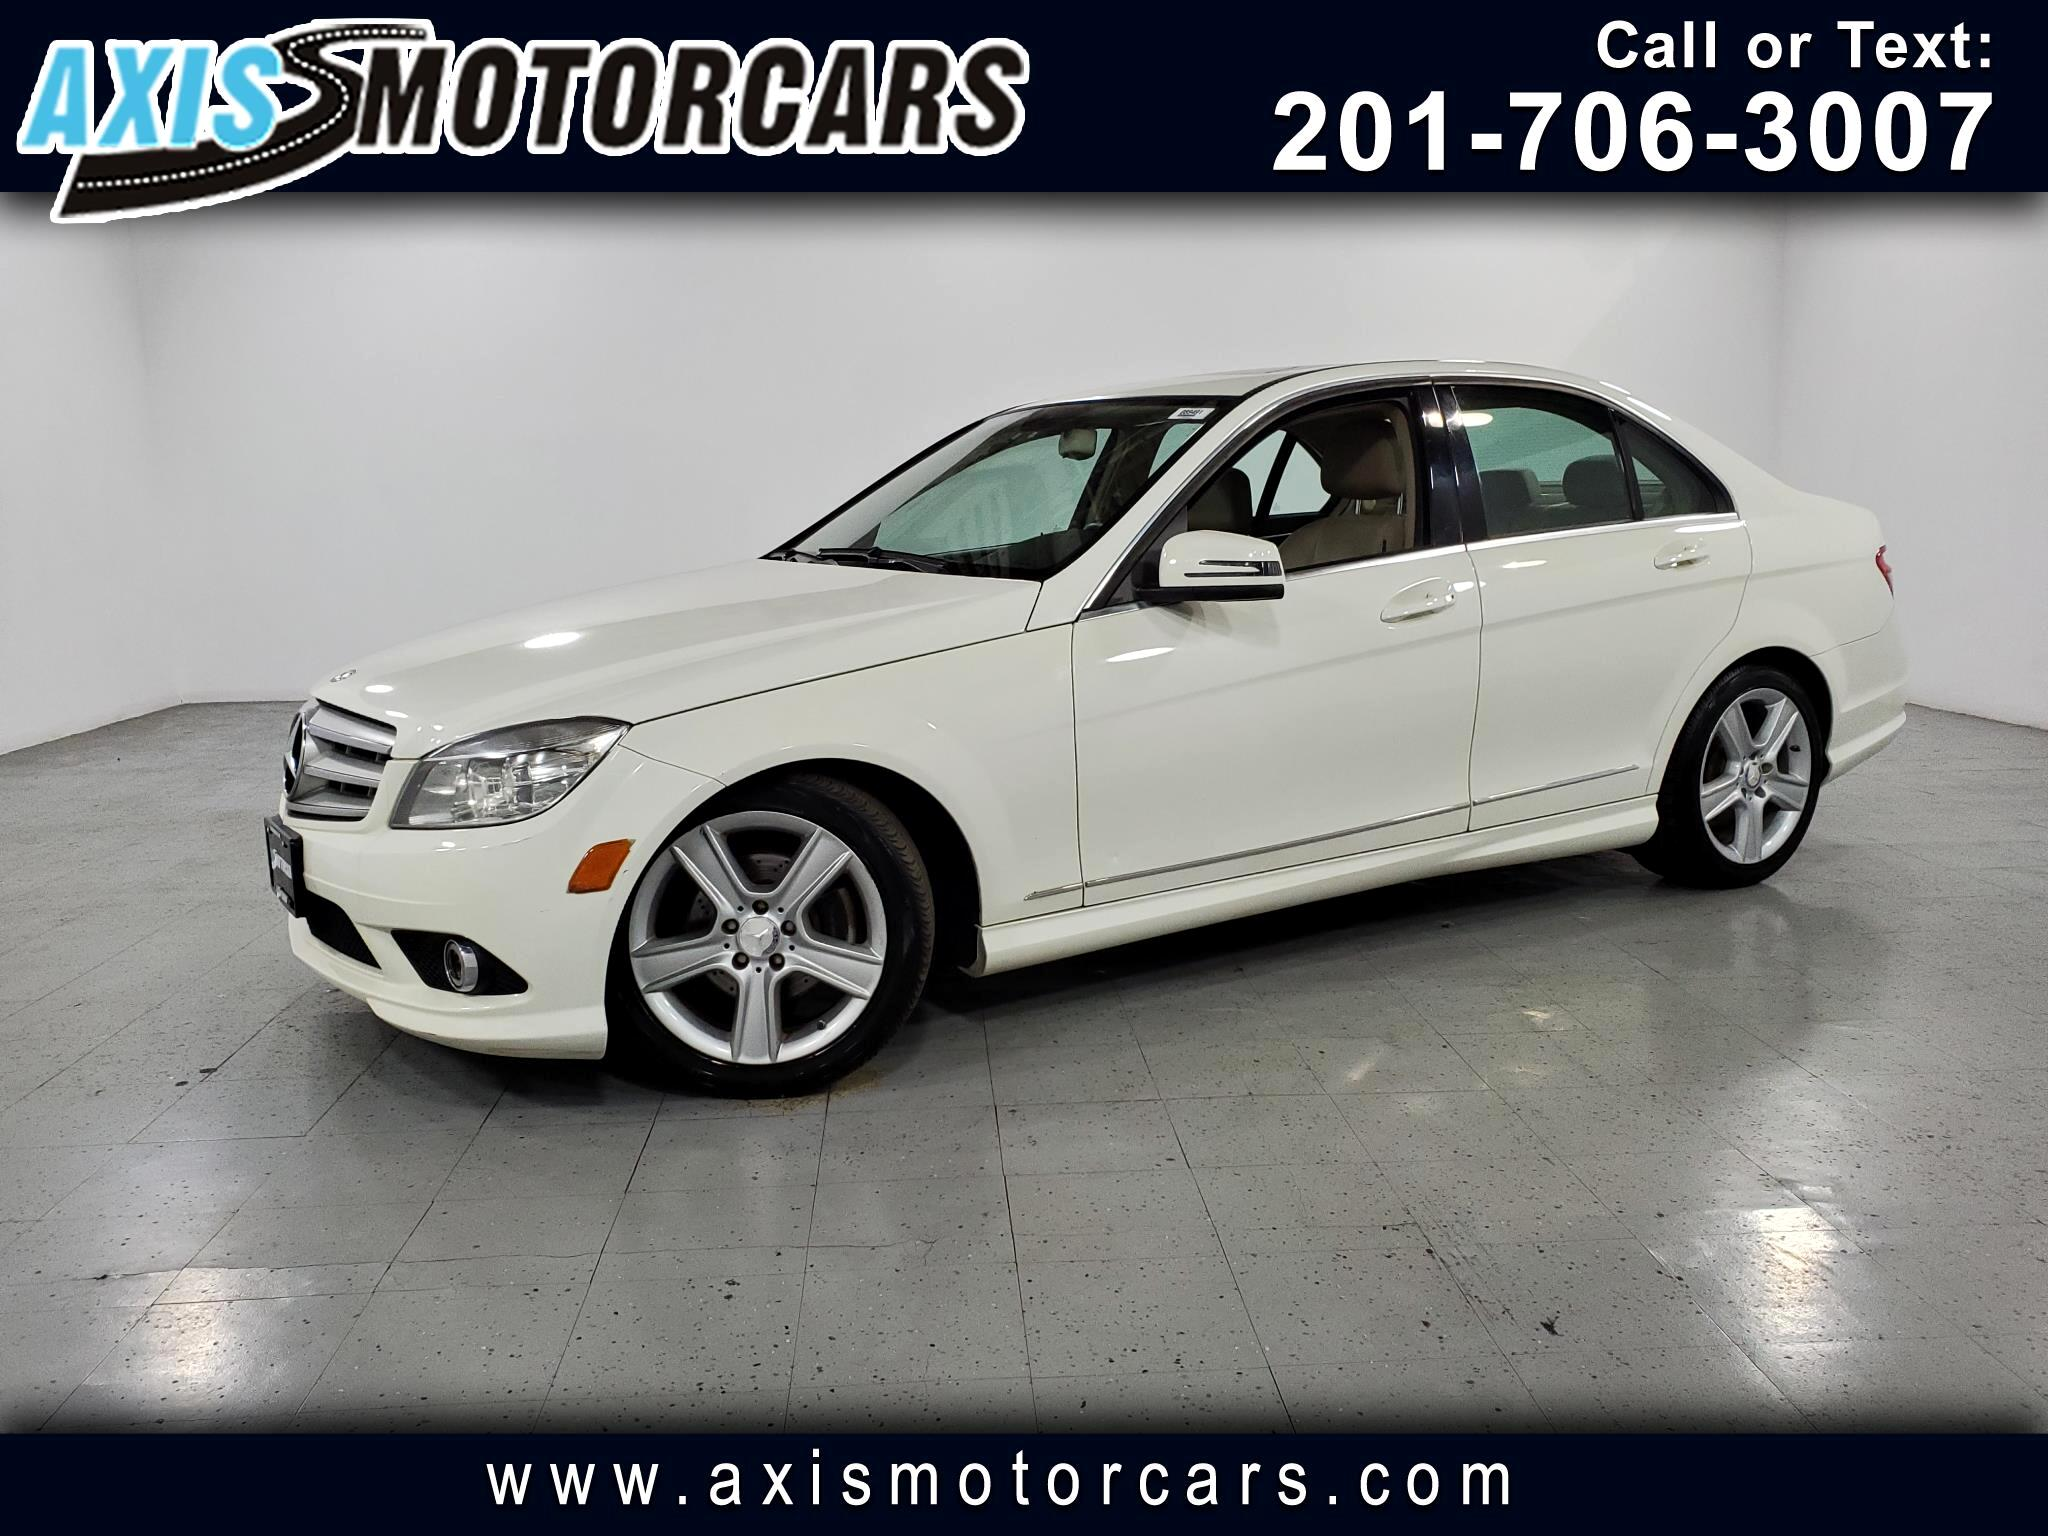 2010 Mercedes-Benz C300 w/Navigation Sunroof Leather